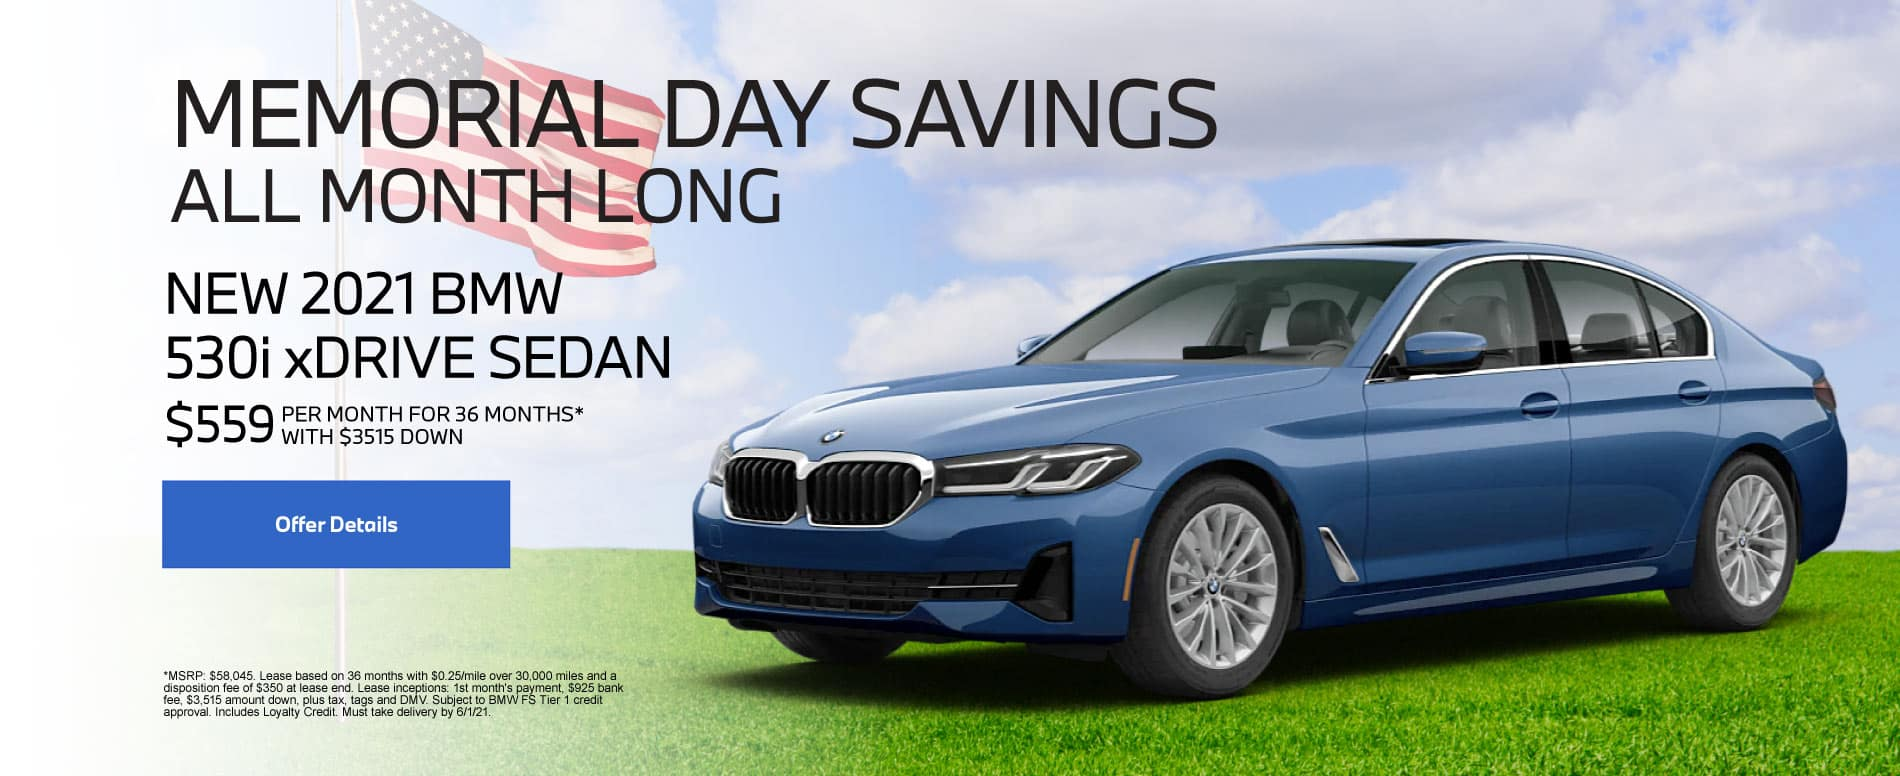 New 2021 BMW 530i $559 per month - Click for Details